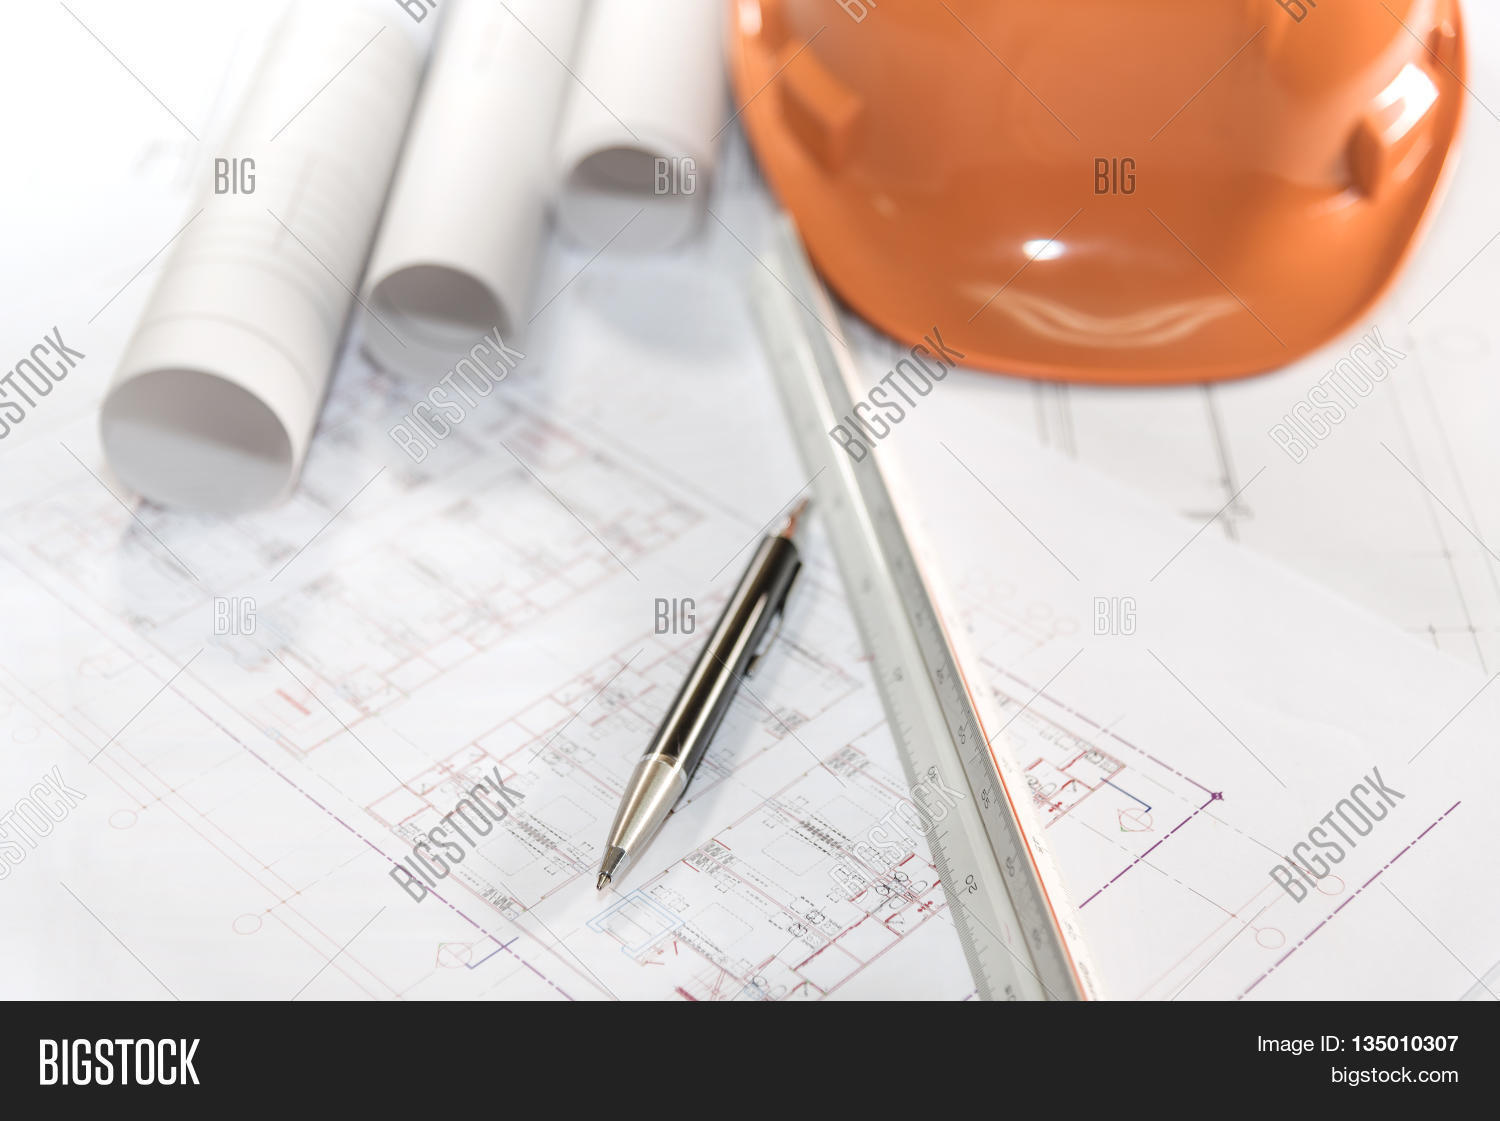 architect,architectural,architecture,engineer,engineering,blueprint,construction,contractor,design,designer,builder,built,cad,carpenter,auto,diagram,draft,drafting,drawing,dwelling,extension,facility,floor,home,house,idea,measurements,mechanical,office,paper,performance,plan,plotter,plumbing,preliminary,print,project,proposal,reconstruction,renovation,repair,sketch,structural,structure,symbols,tools,tracing,rolls,working,helmet